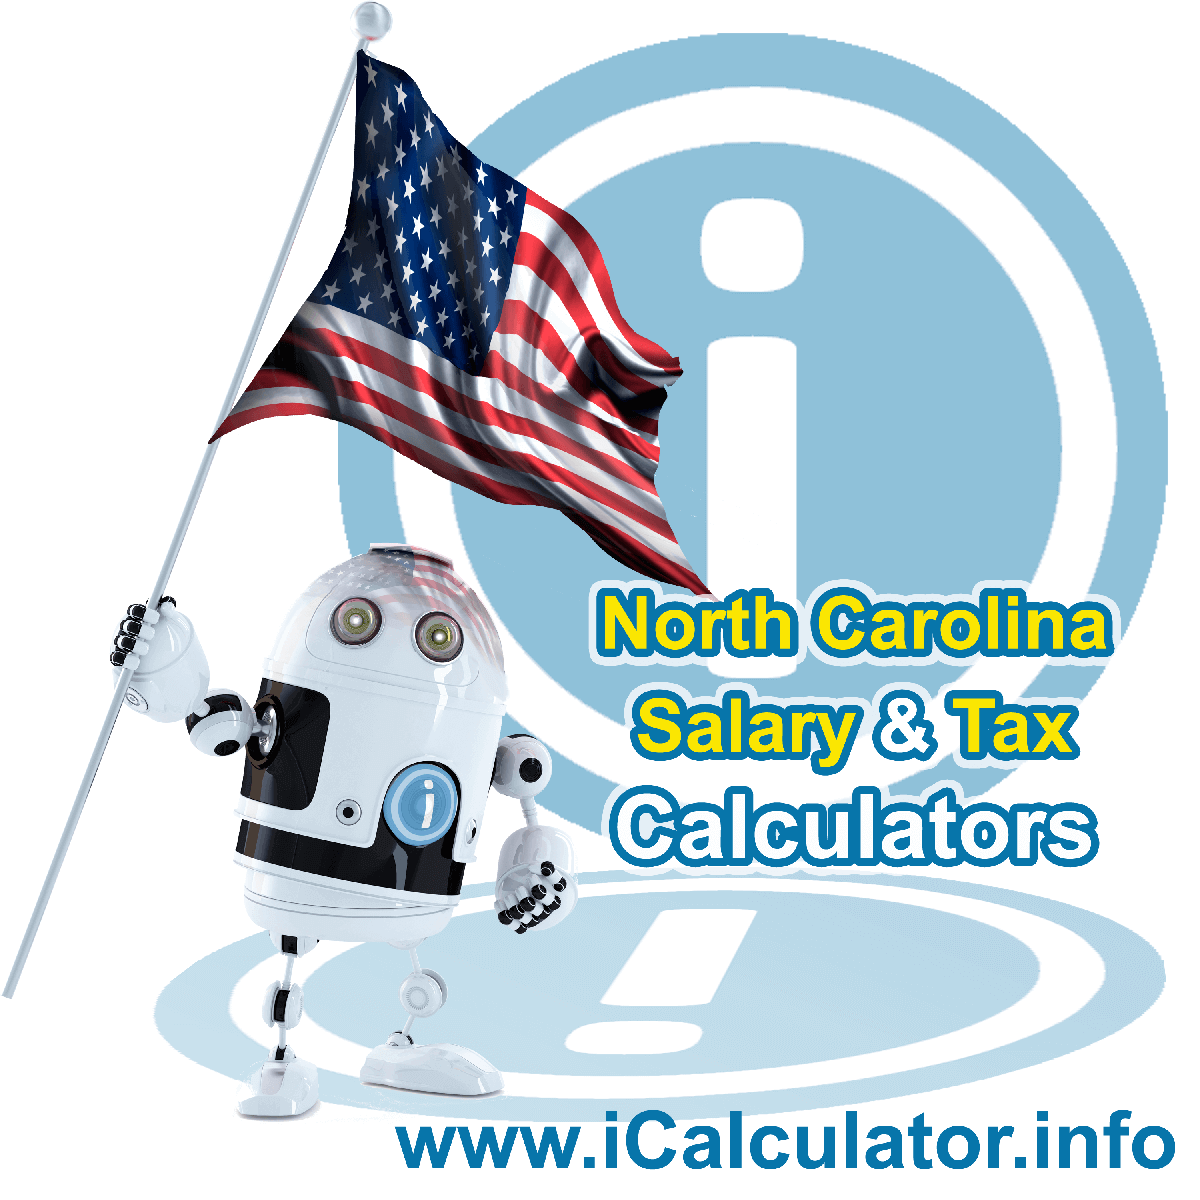 North Carolina Salary Calculator 2019 | iCalculator | The North Carolina Salary Calculator allows you to quickly calculate your salary after tax including North Carolina State Tax, Federal State Tax, Medicare Deductions, Social Security, Capital Gains and other income tax and salary deductions complete with supporting North Carolina state tax tables